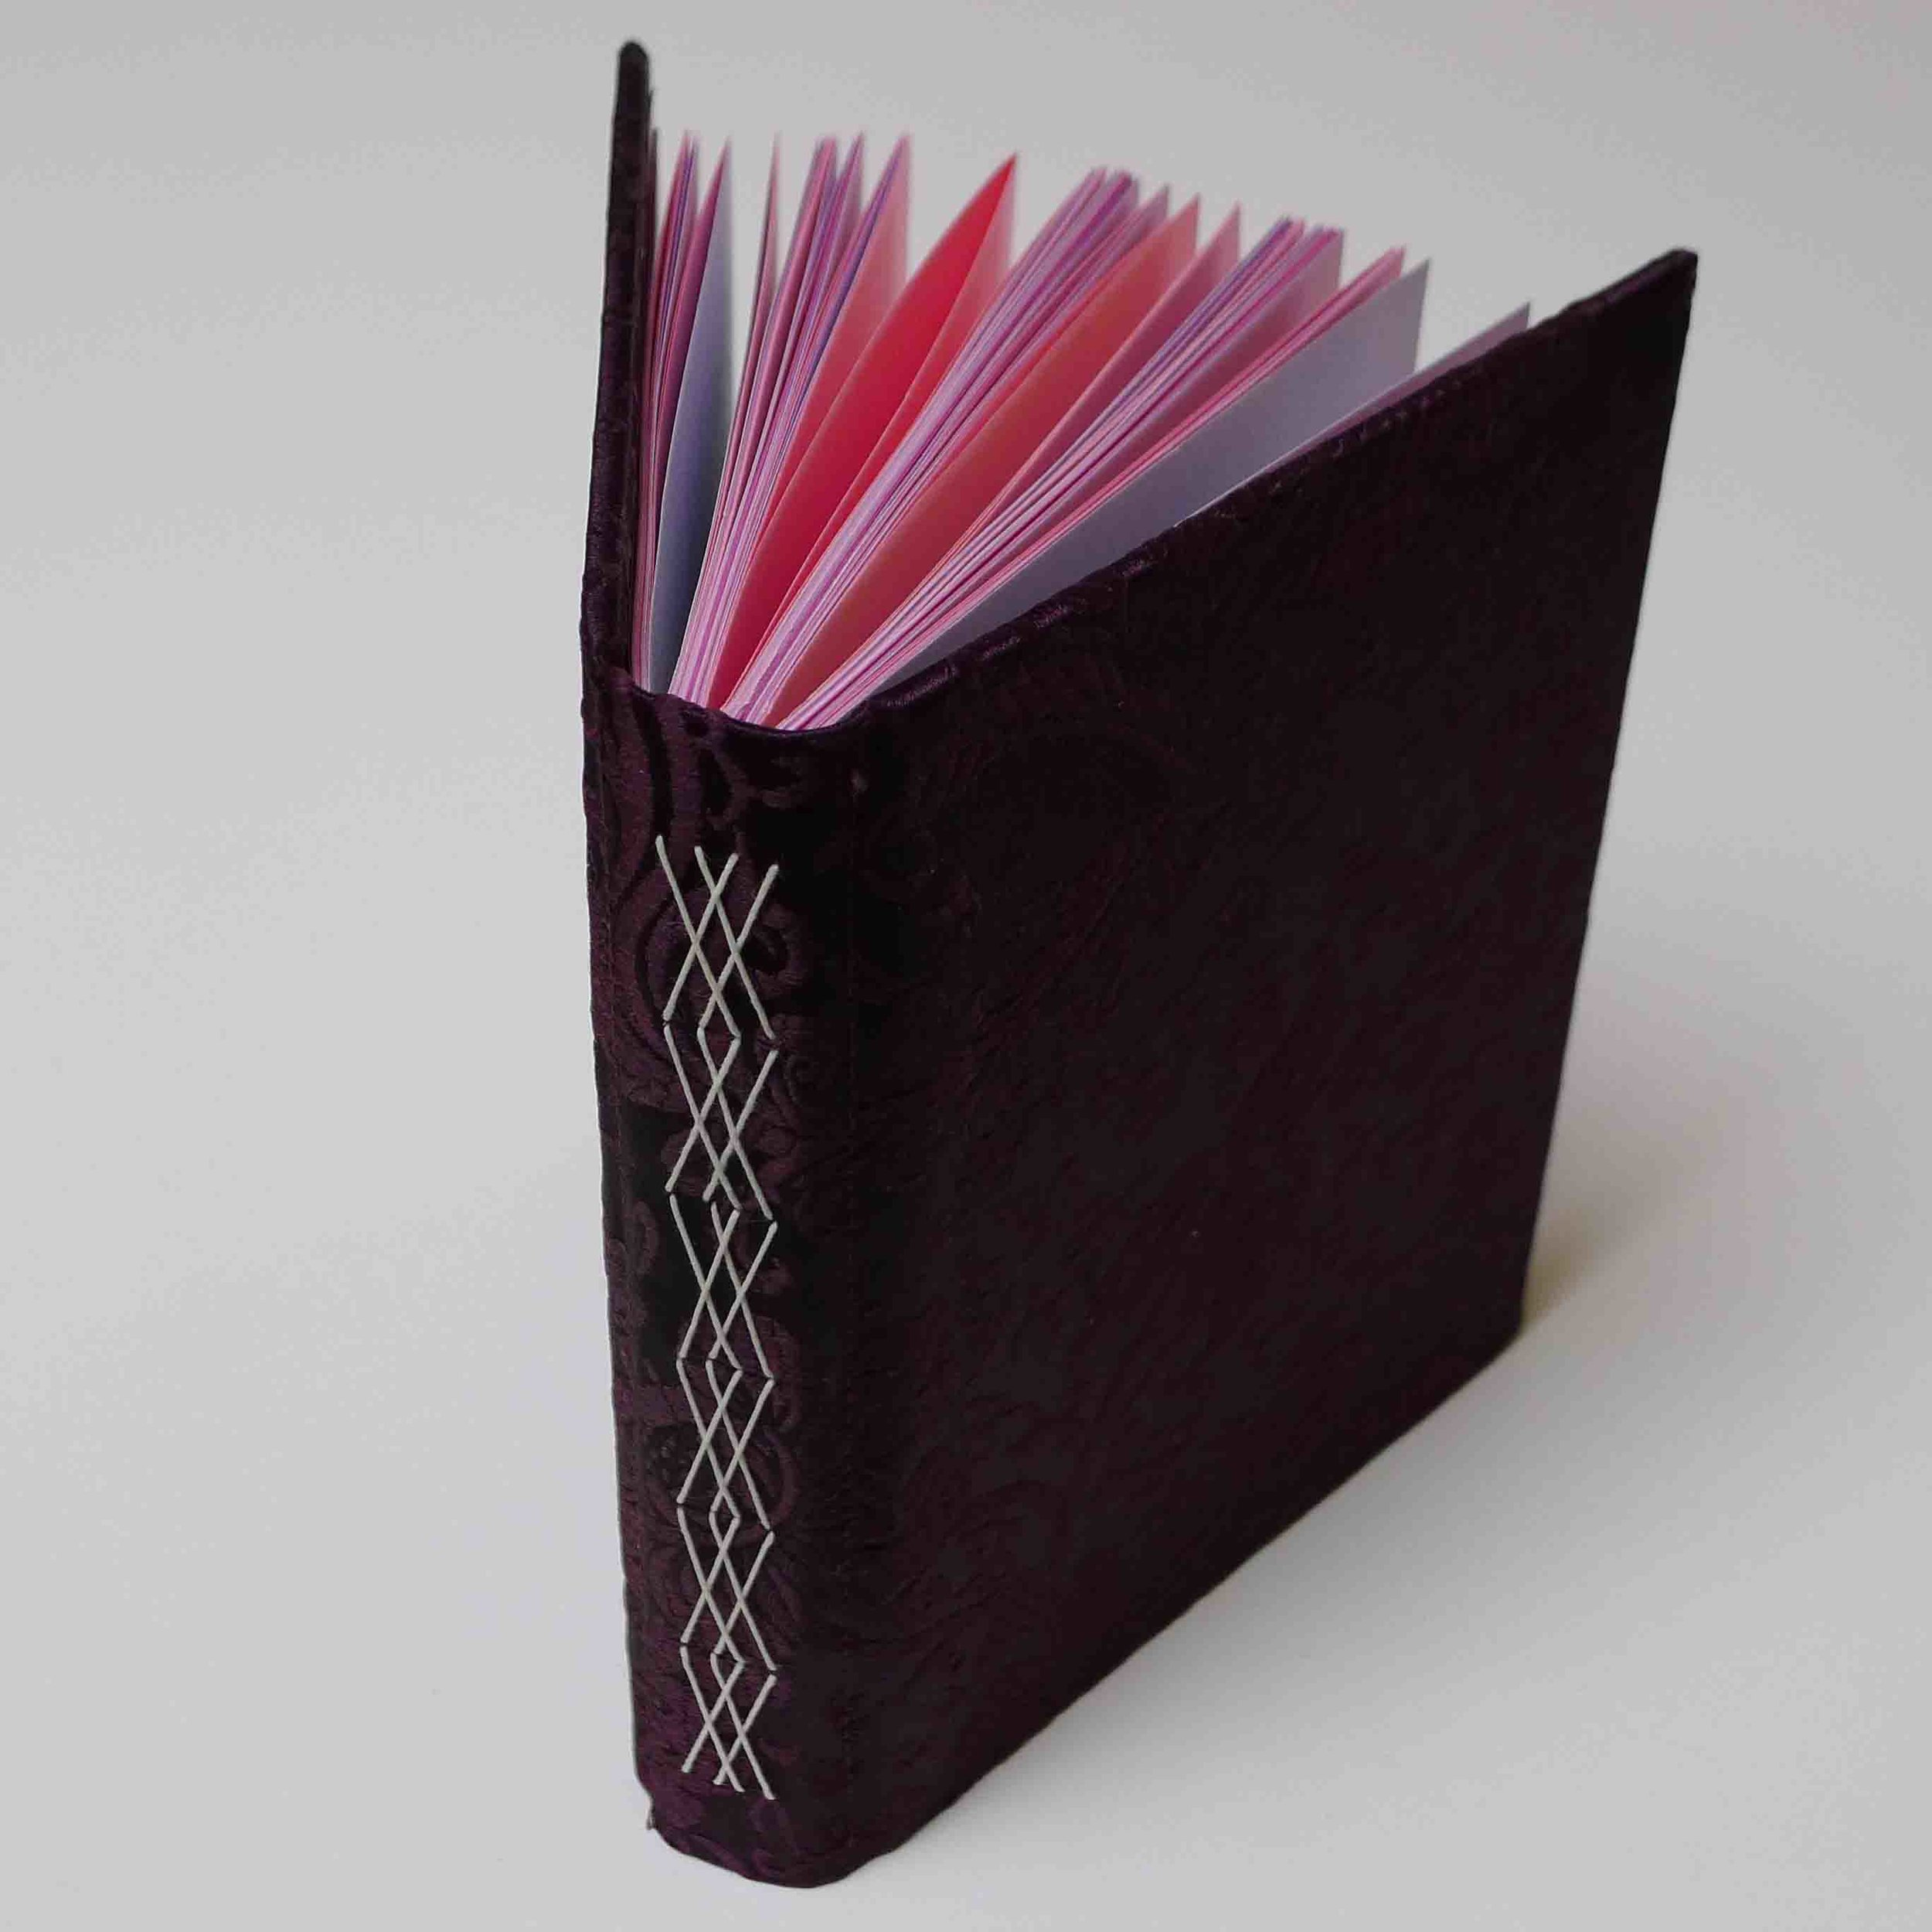 Fancy stitching through pairs of signatures, rigid cover